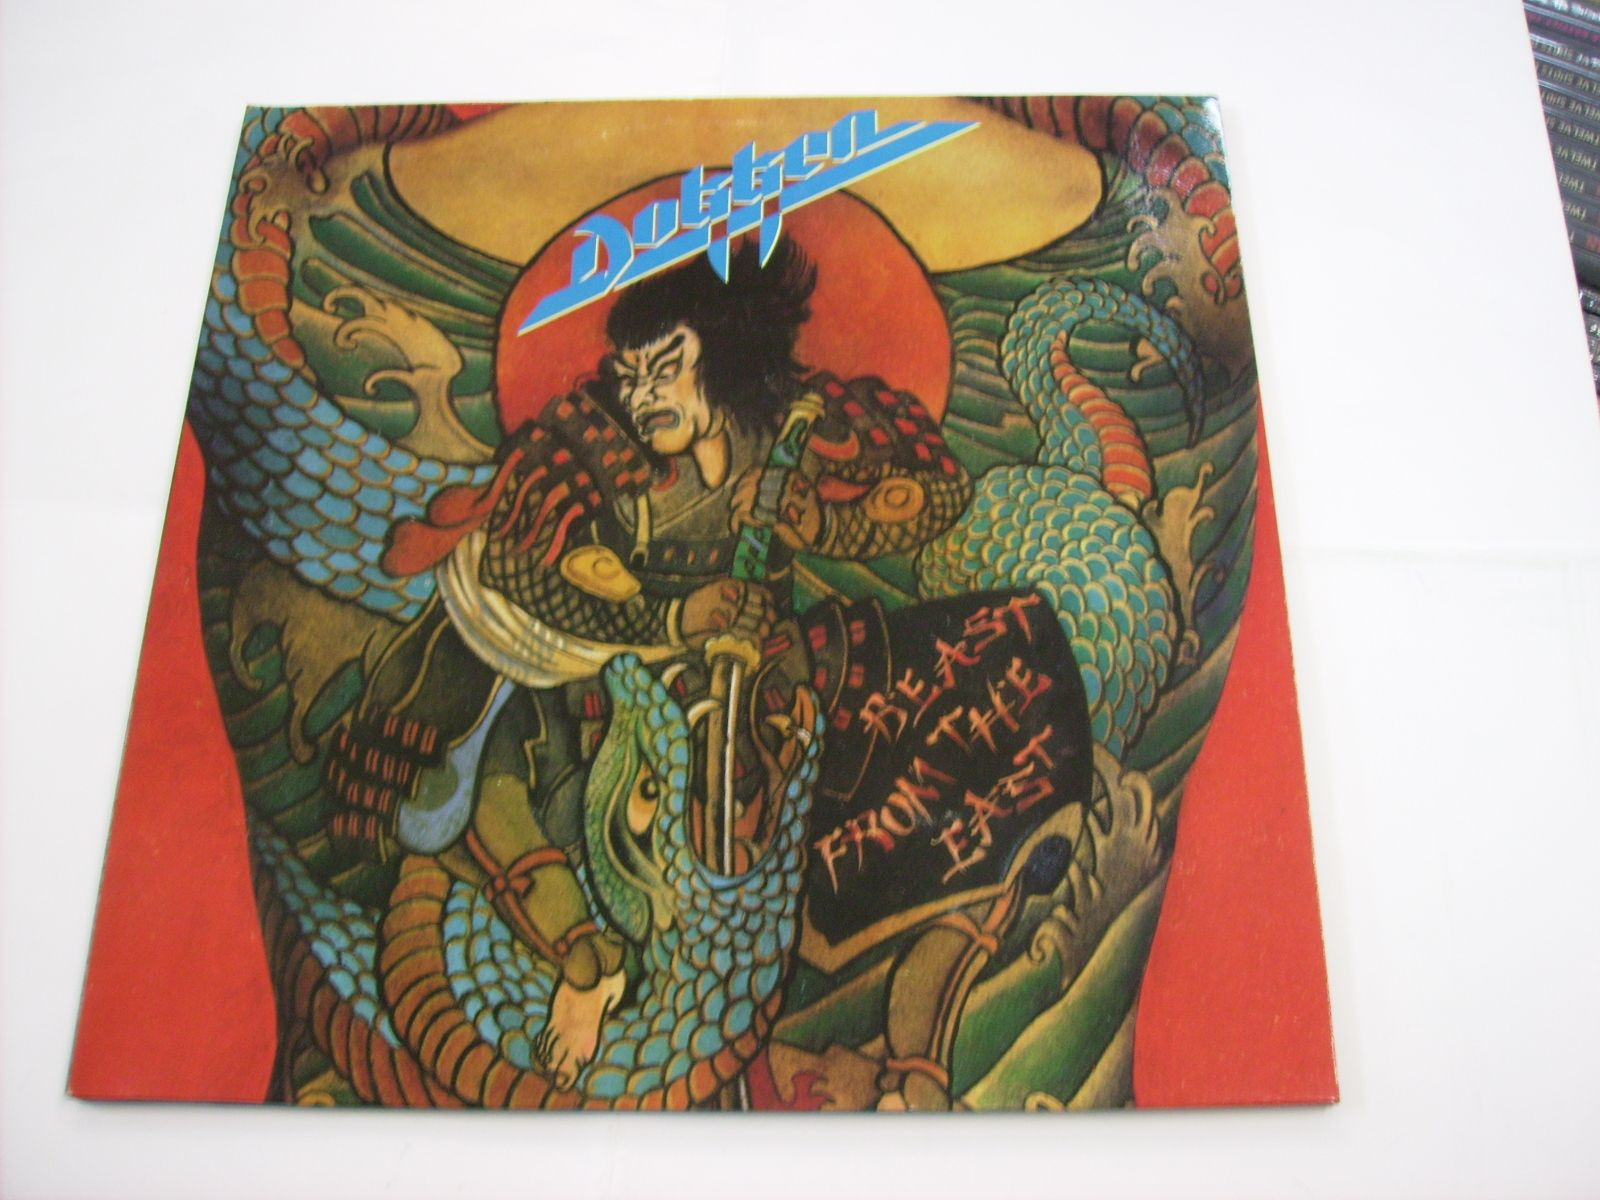 Dokken - Beast From The East (2lp)